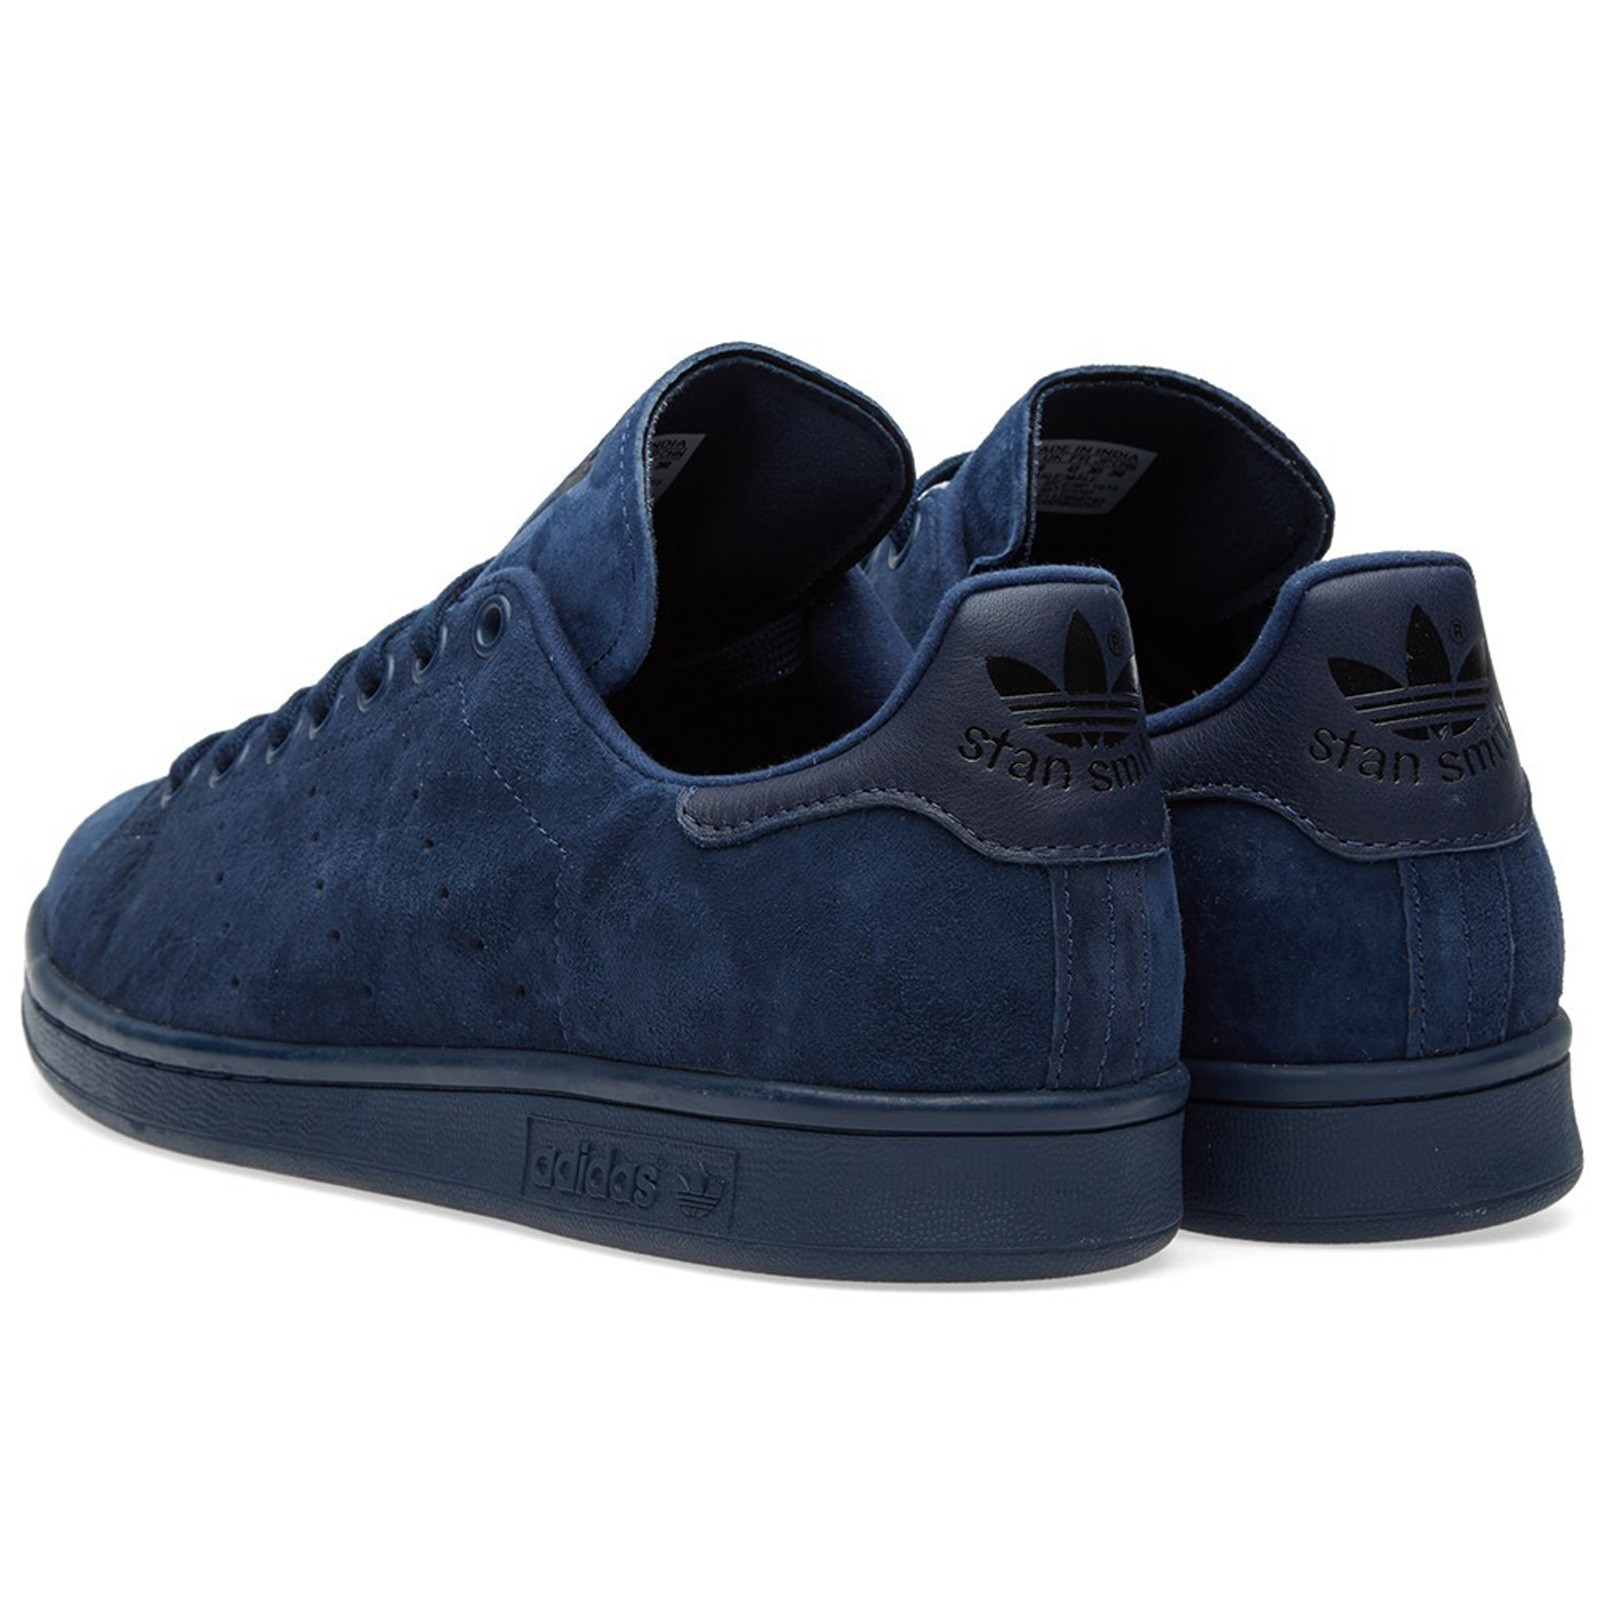 ADIDAS STAN SMITH CLEAN SNEAKER SCHUHE WILDLEDER S75107 NIGHT INDIGO BLAU